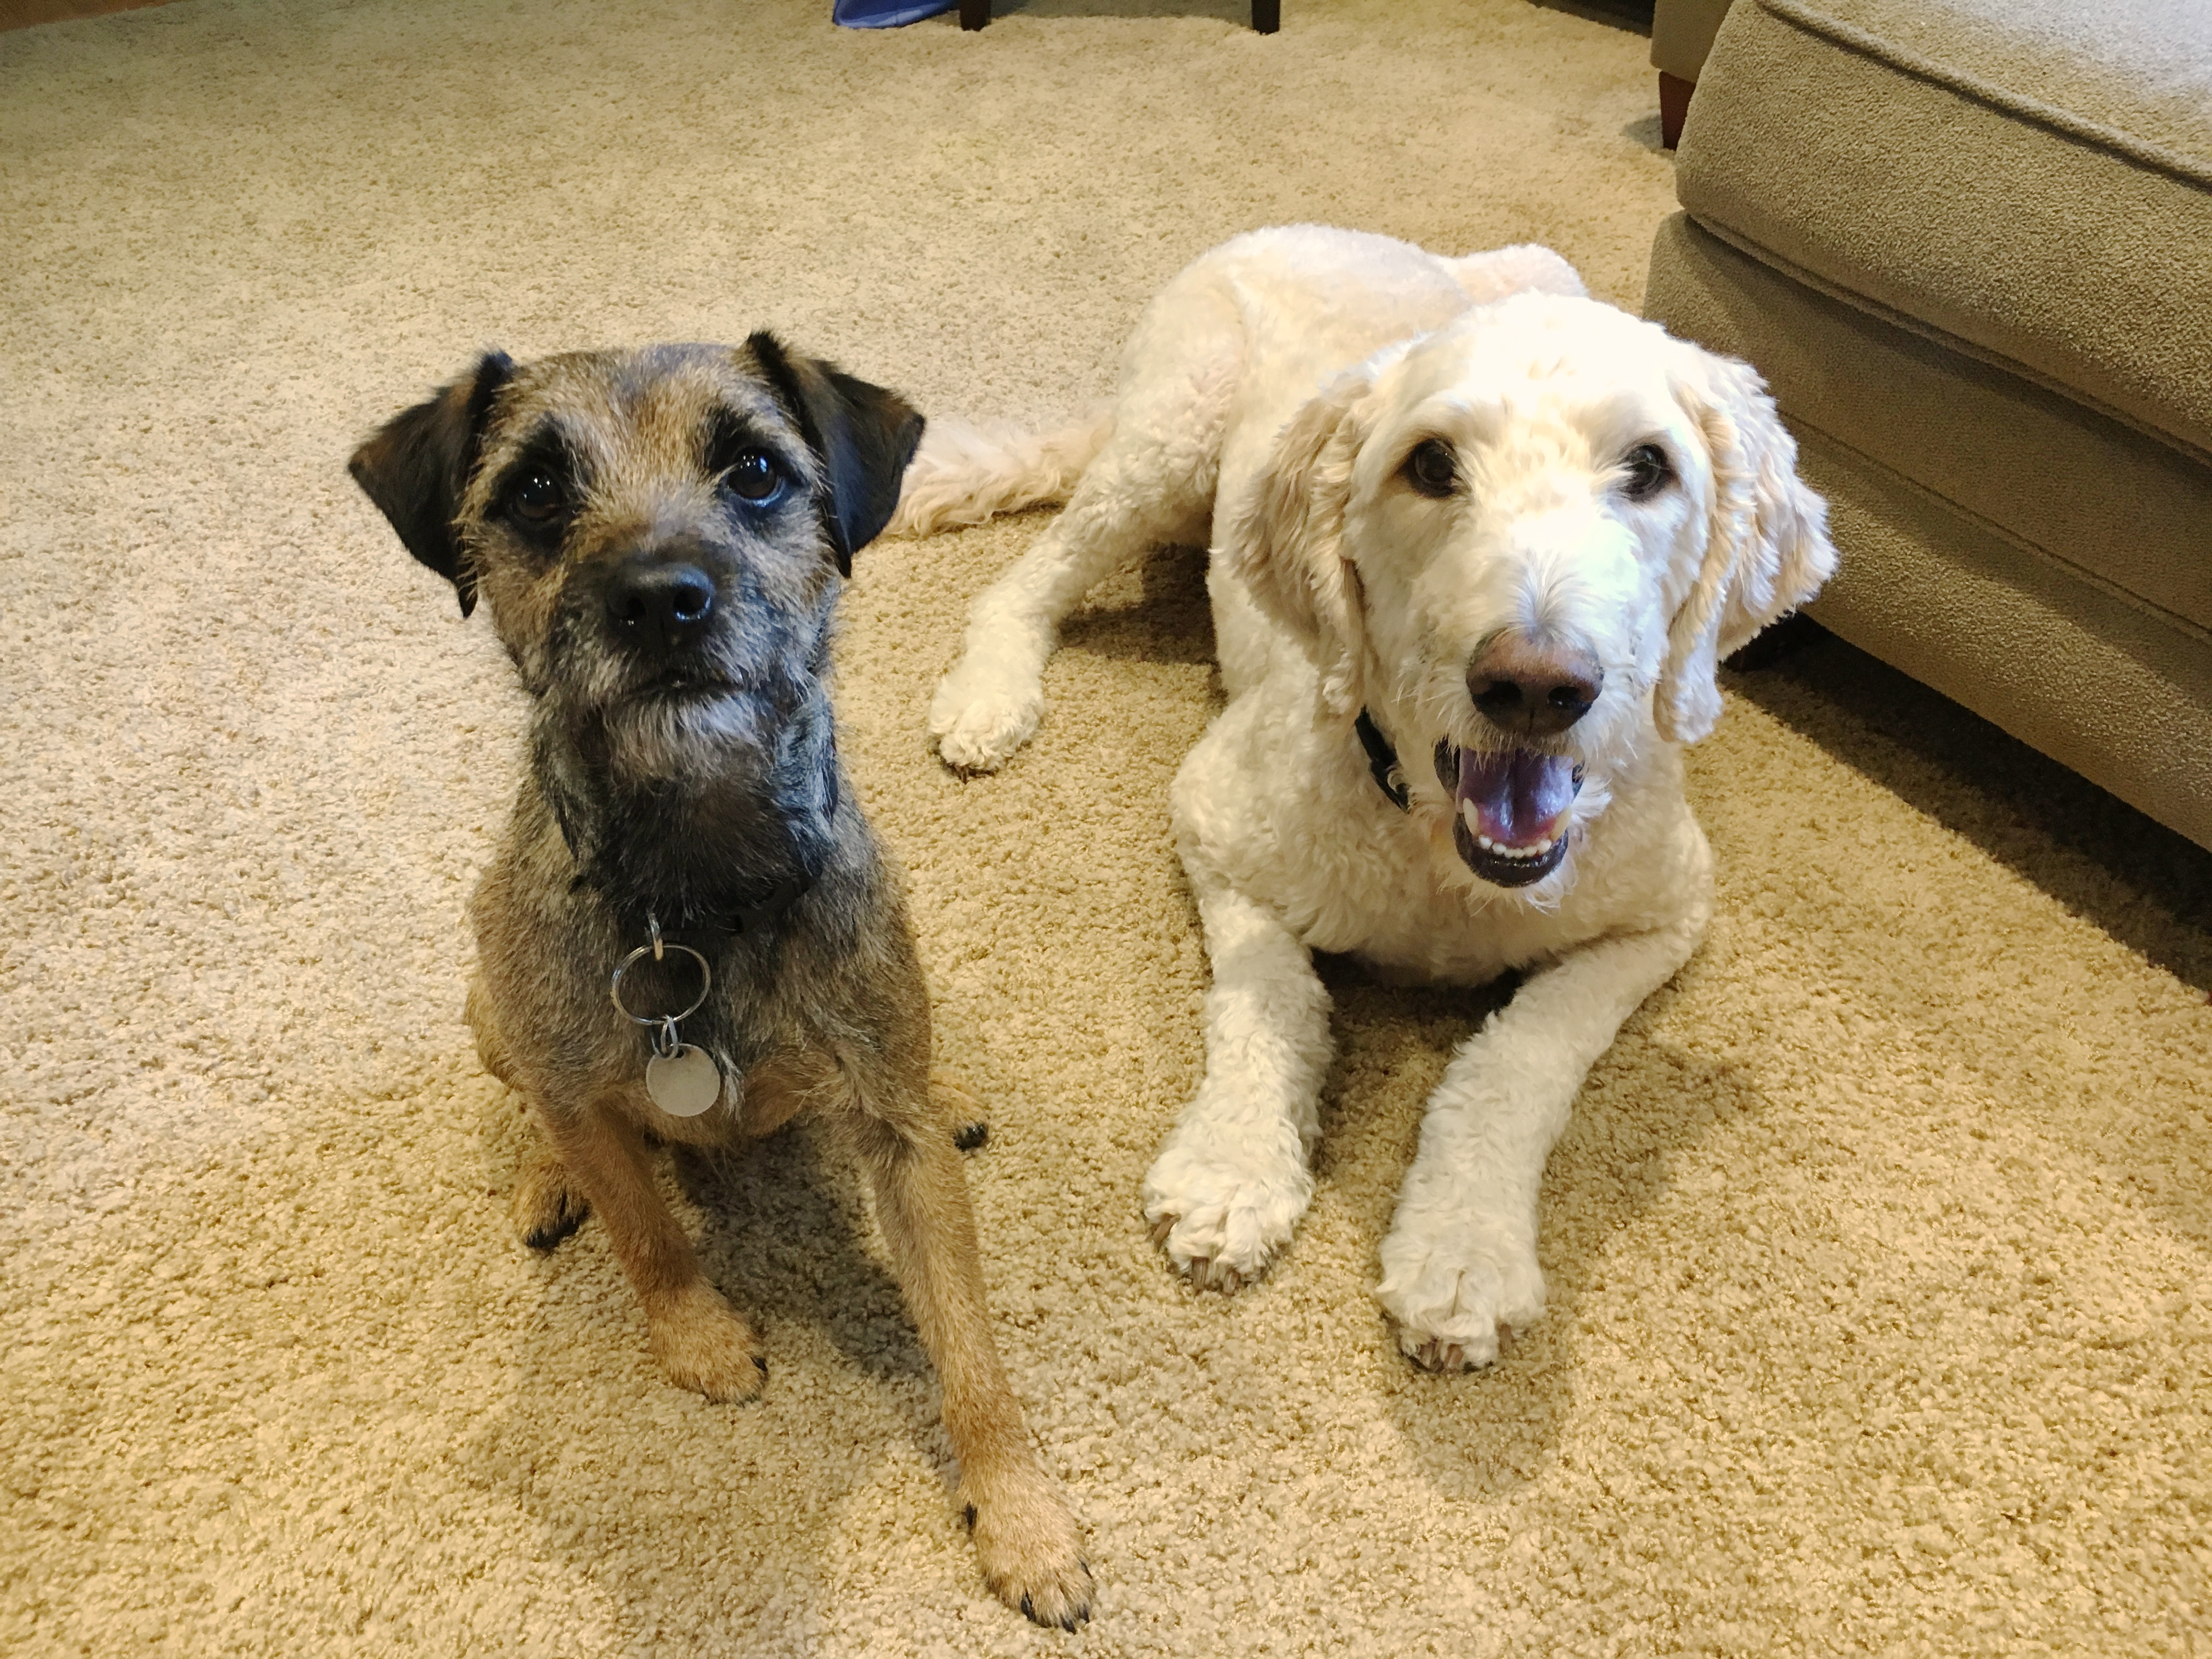 Max is a four-year-old Border Terrier who was recently adopted into a West  Omaha home with Barley cc1d09ddb51